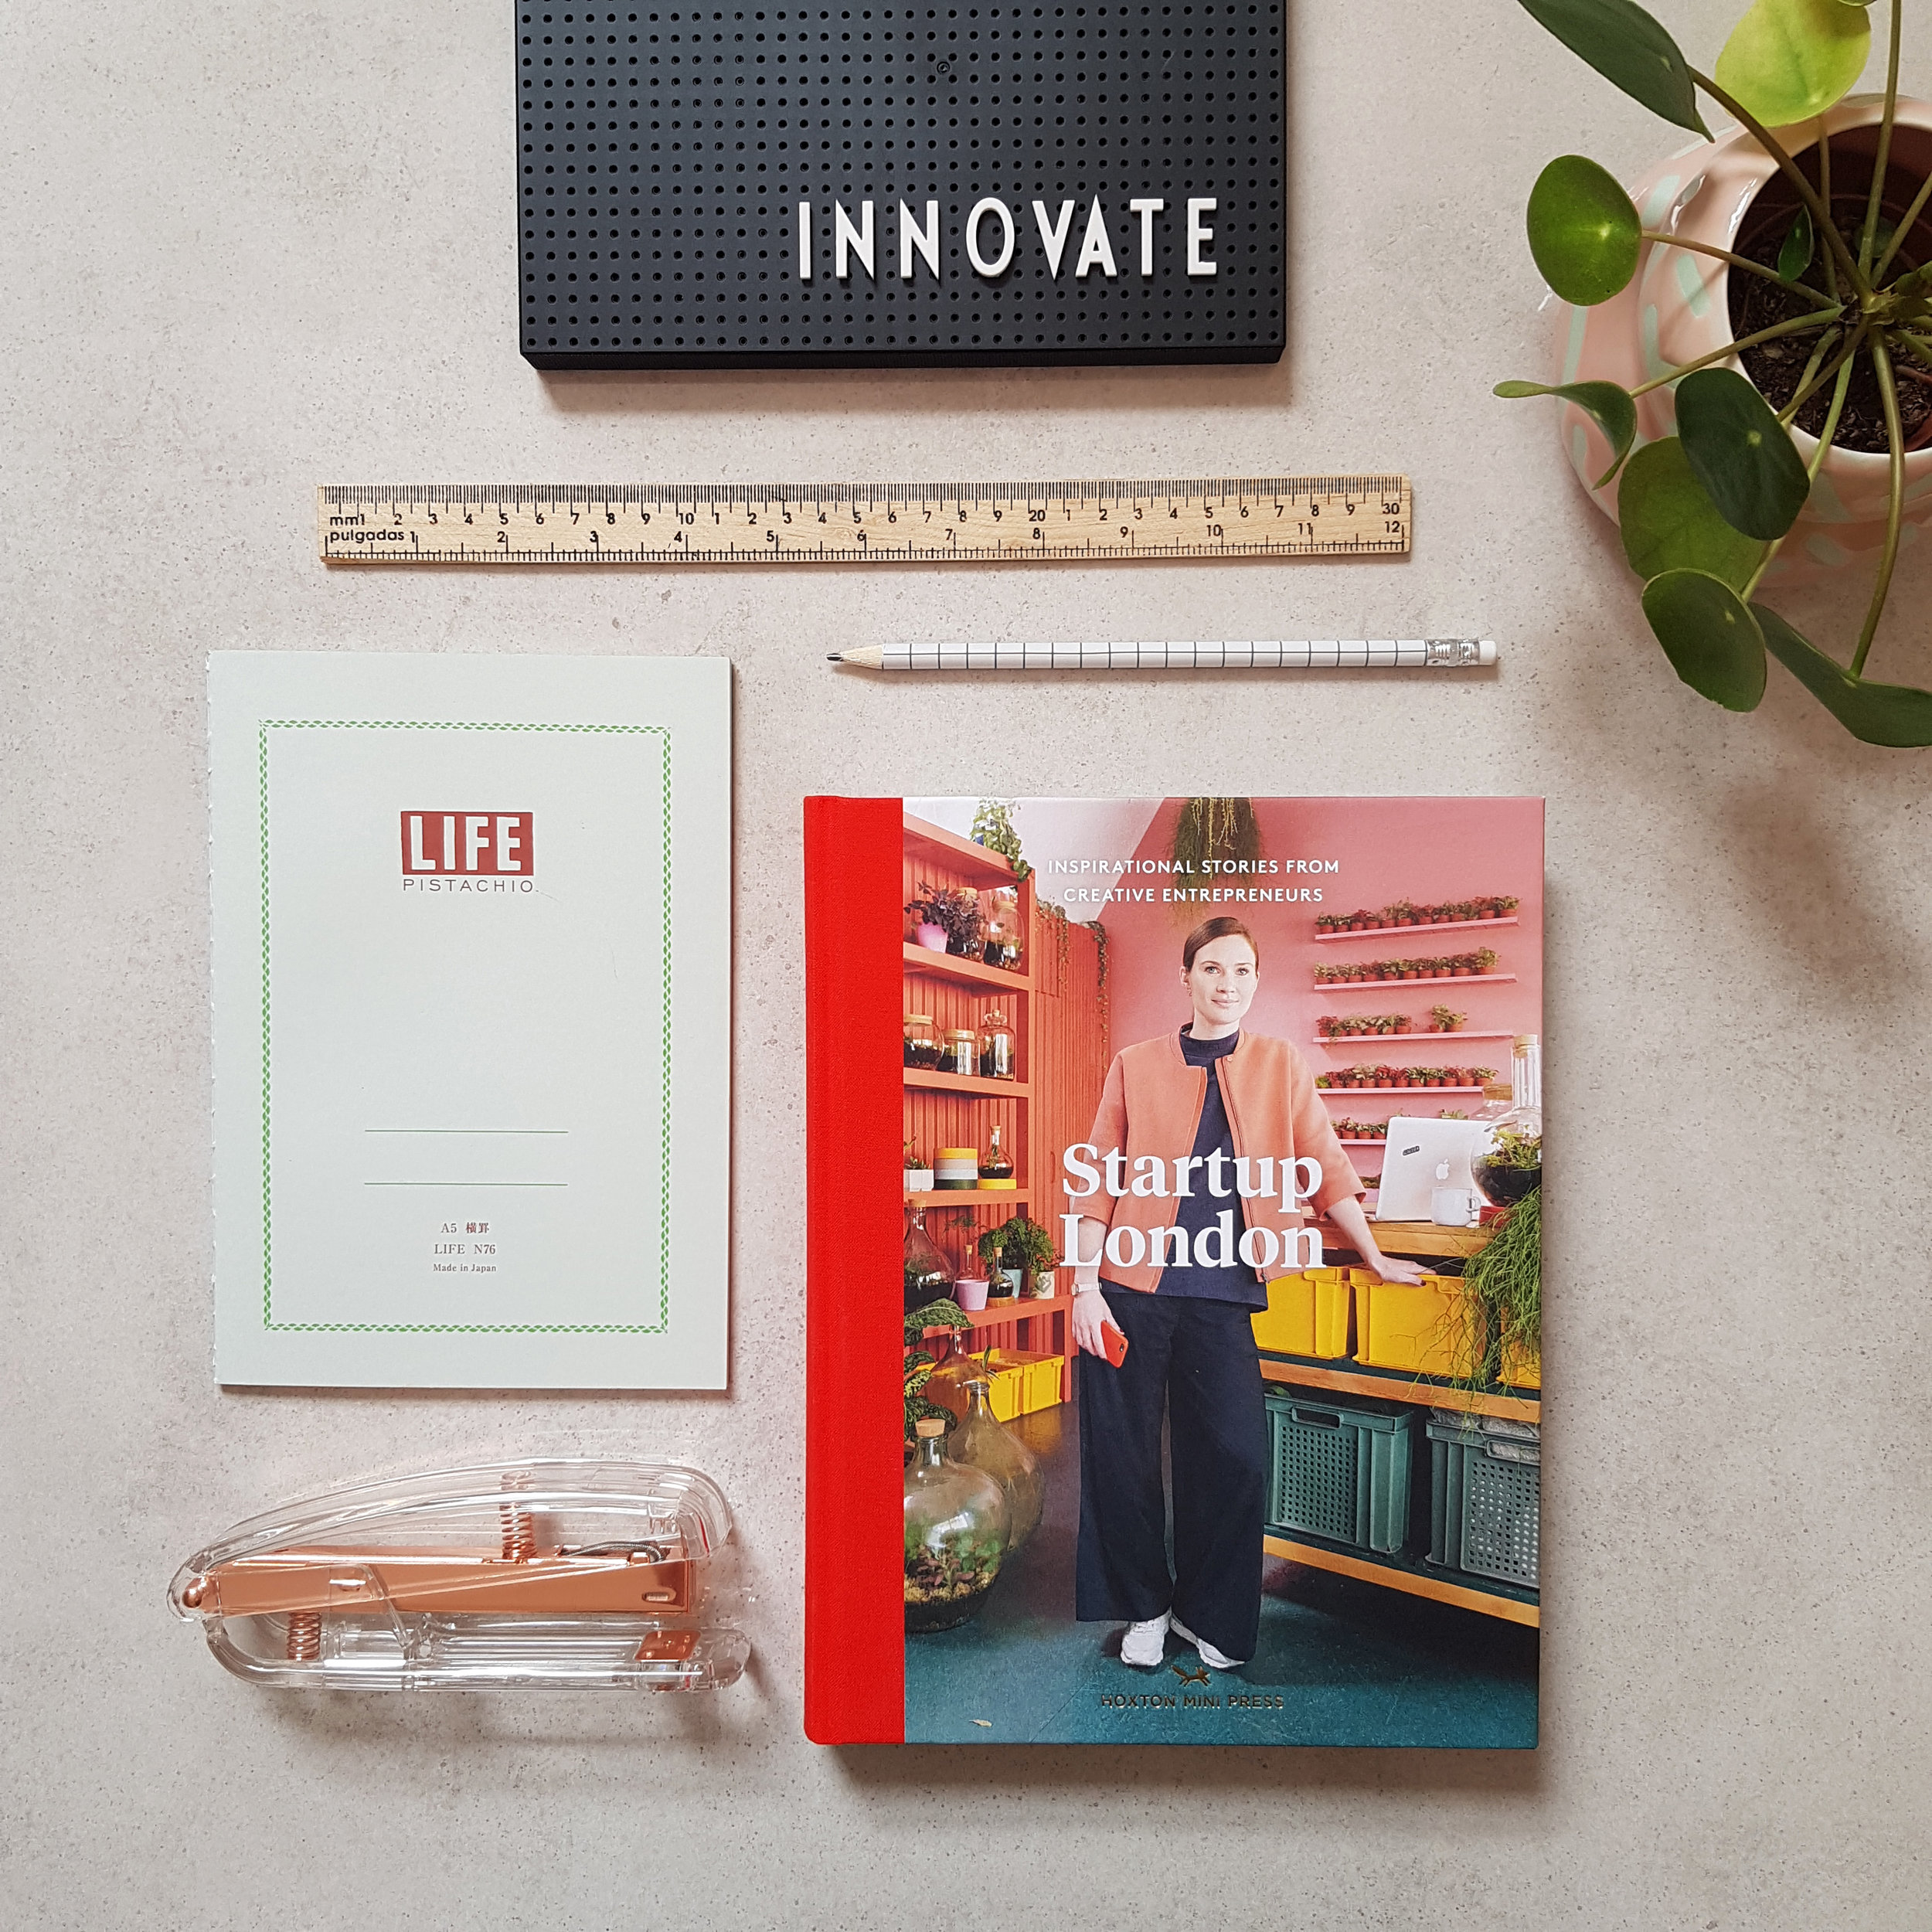 Start Up London book review